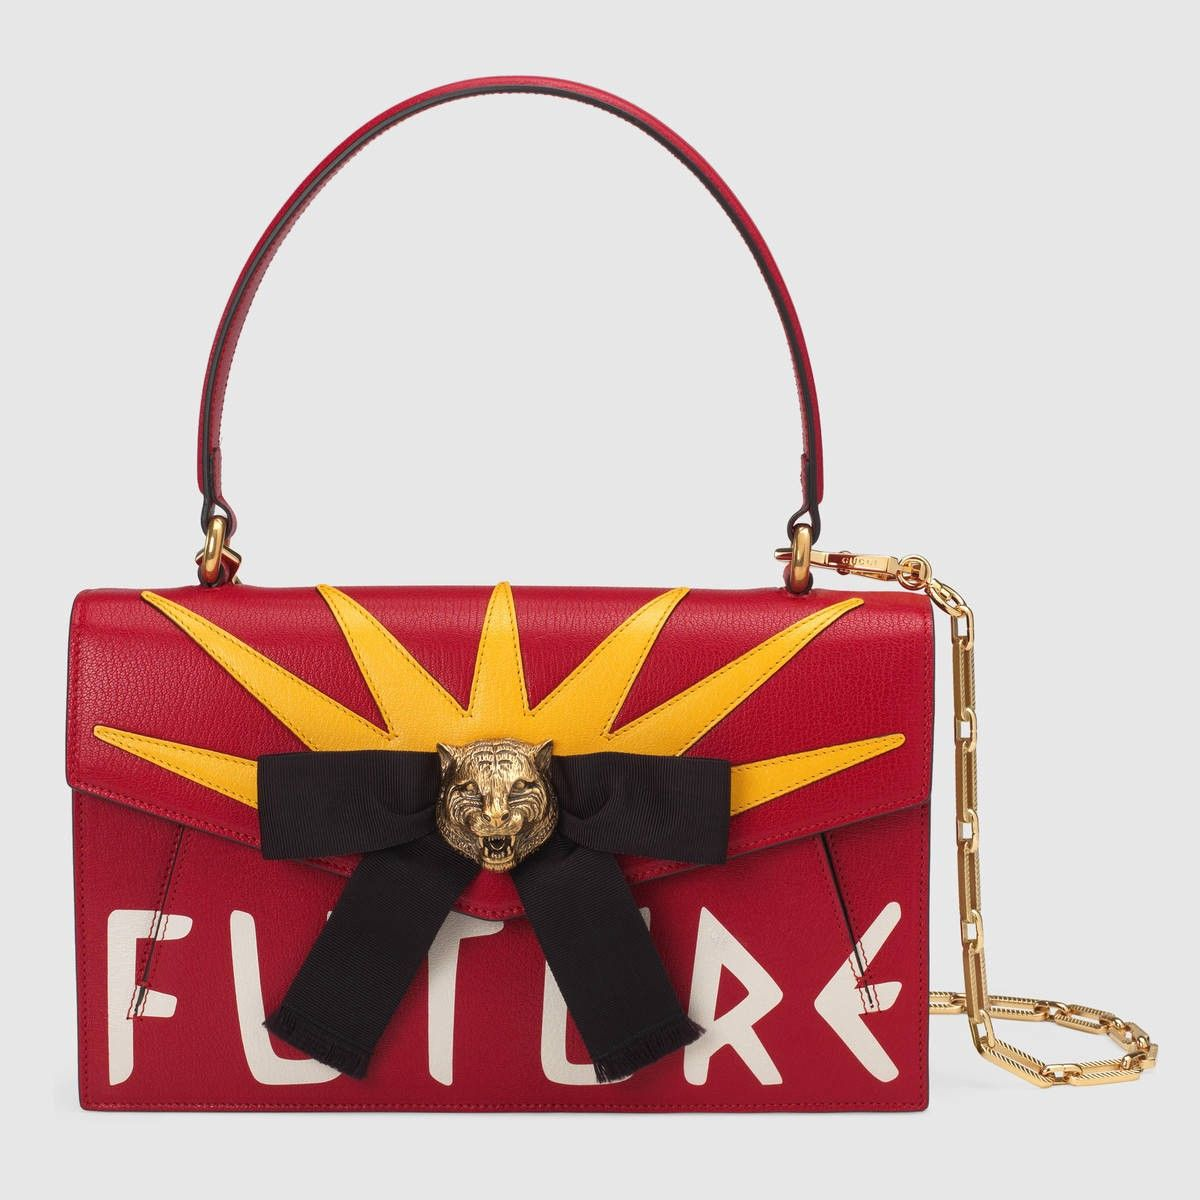 GUCCI Osiride leather top handle bag - red leather.  gucci  bags  shoulder 476b45886e04